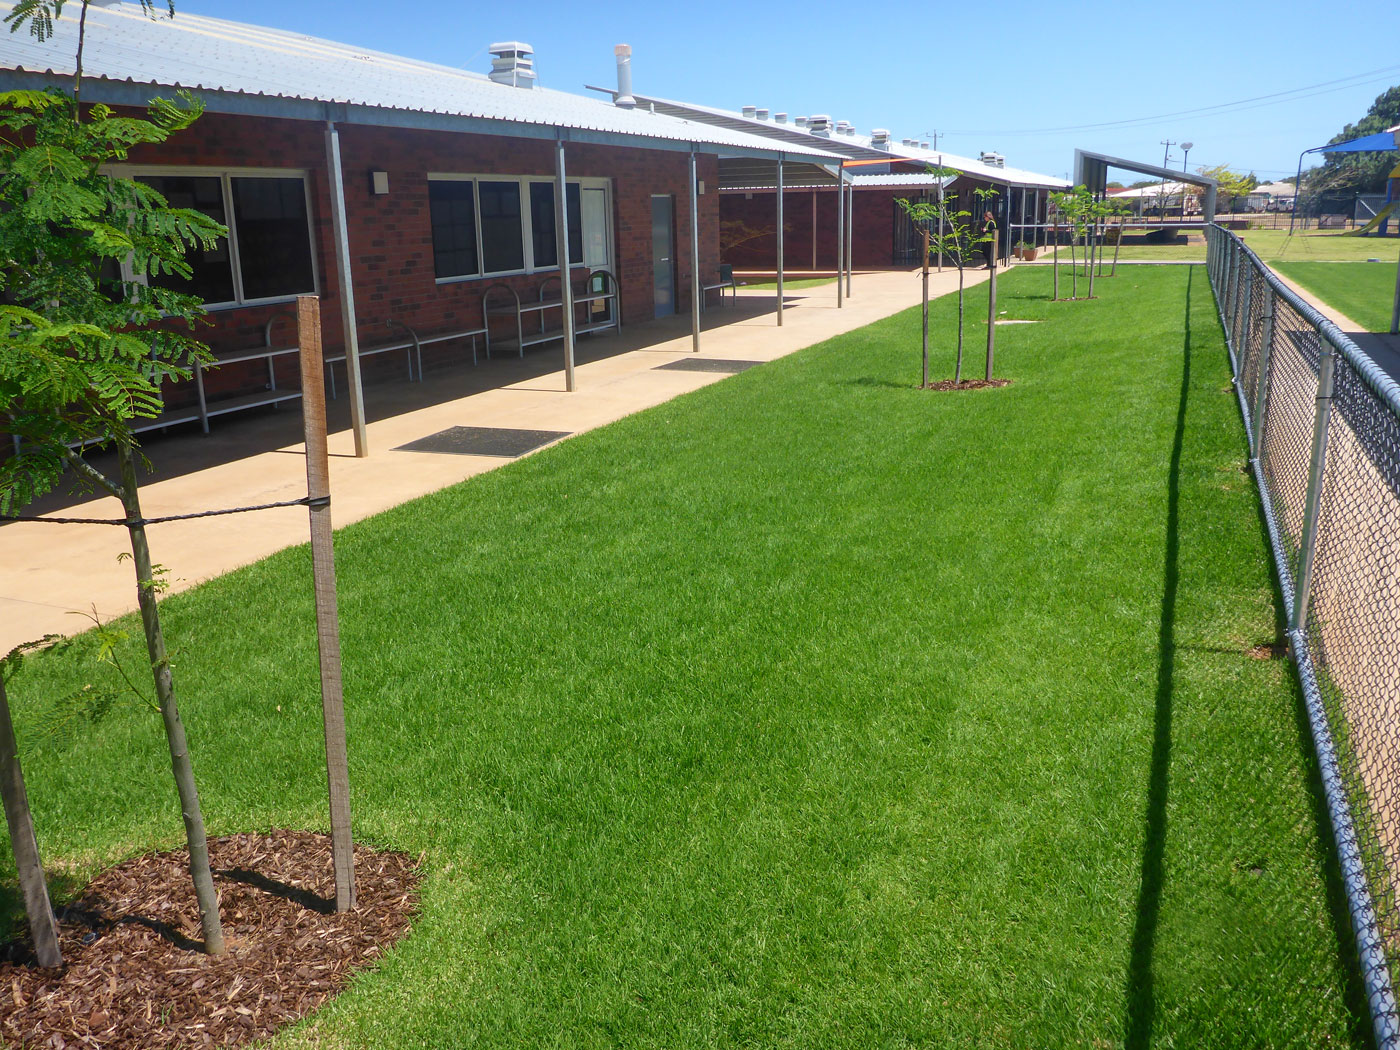 Carnarvon Community College - Stage 2 & 3 : Image 2